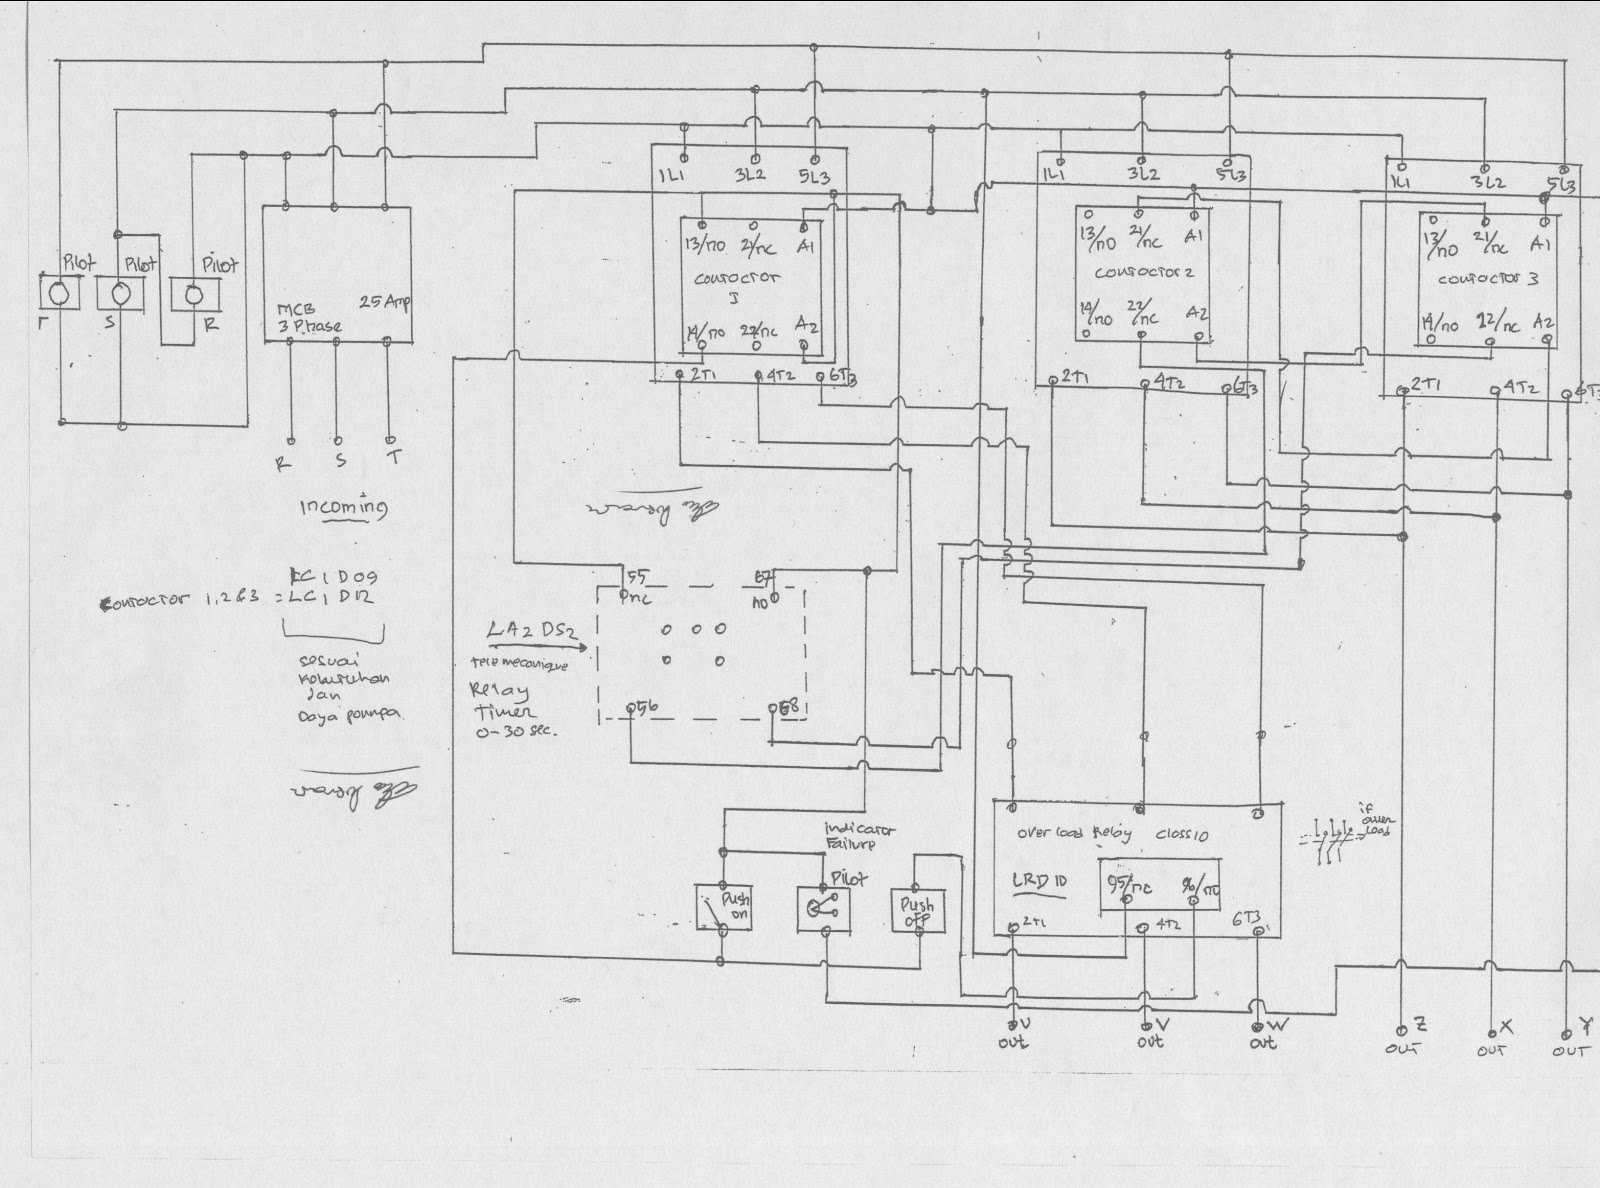 wiring diagram panel ats sederhana wiki    apktodownload com